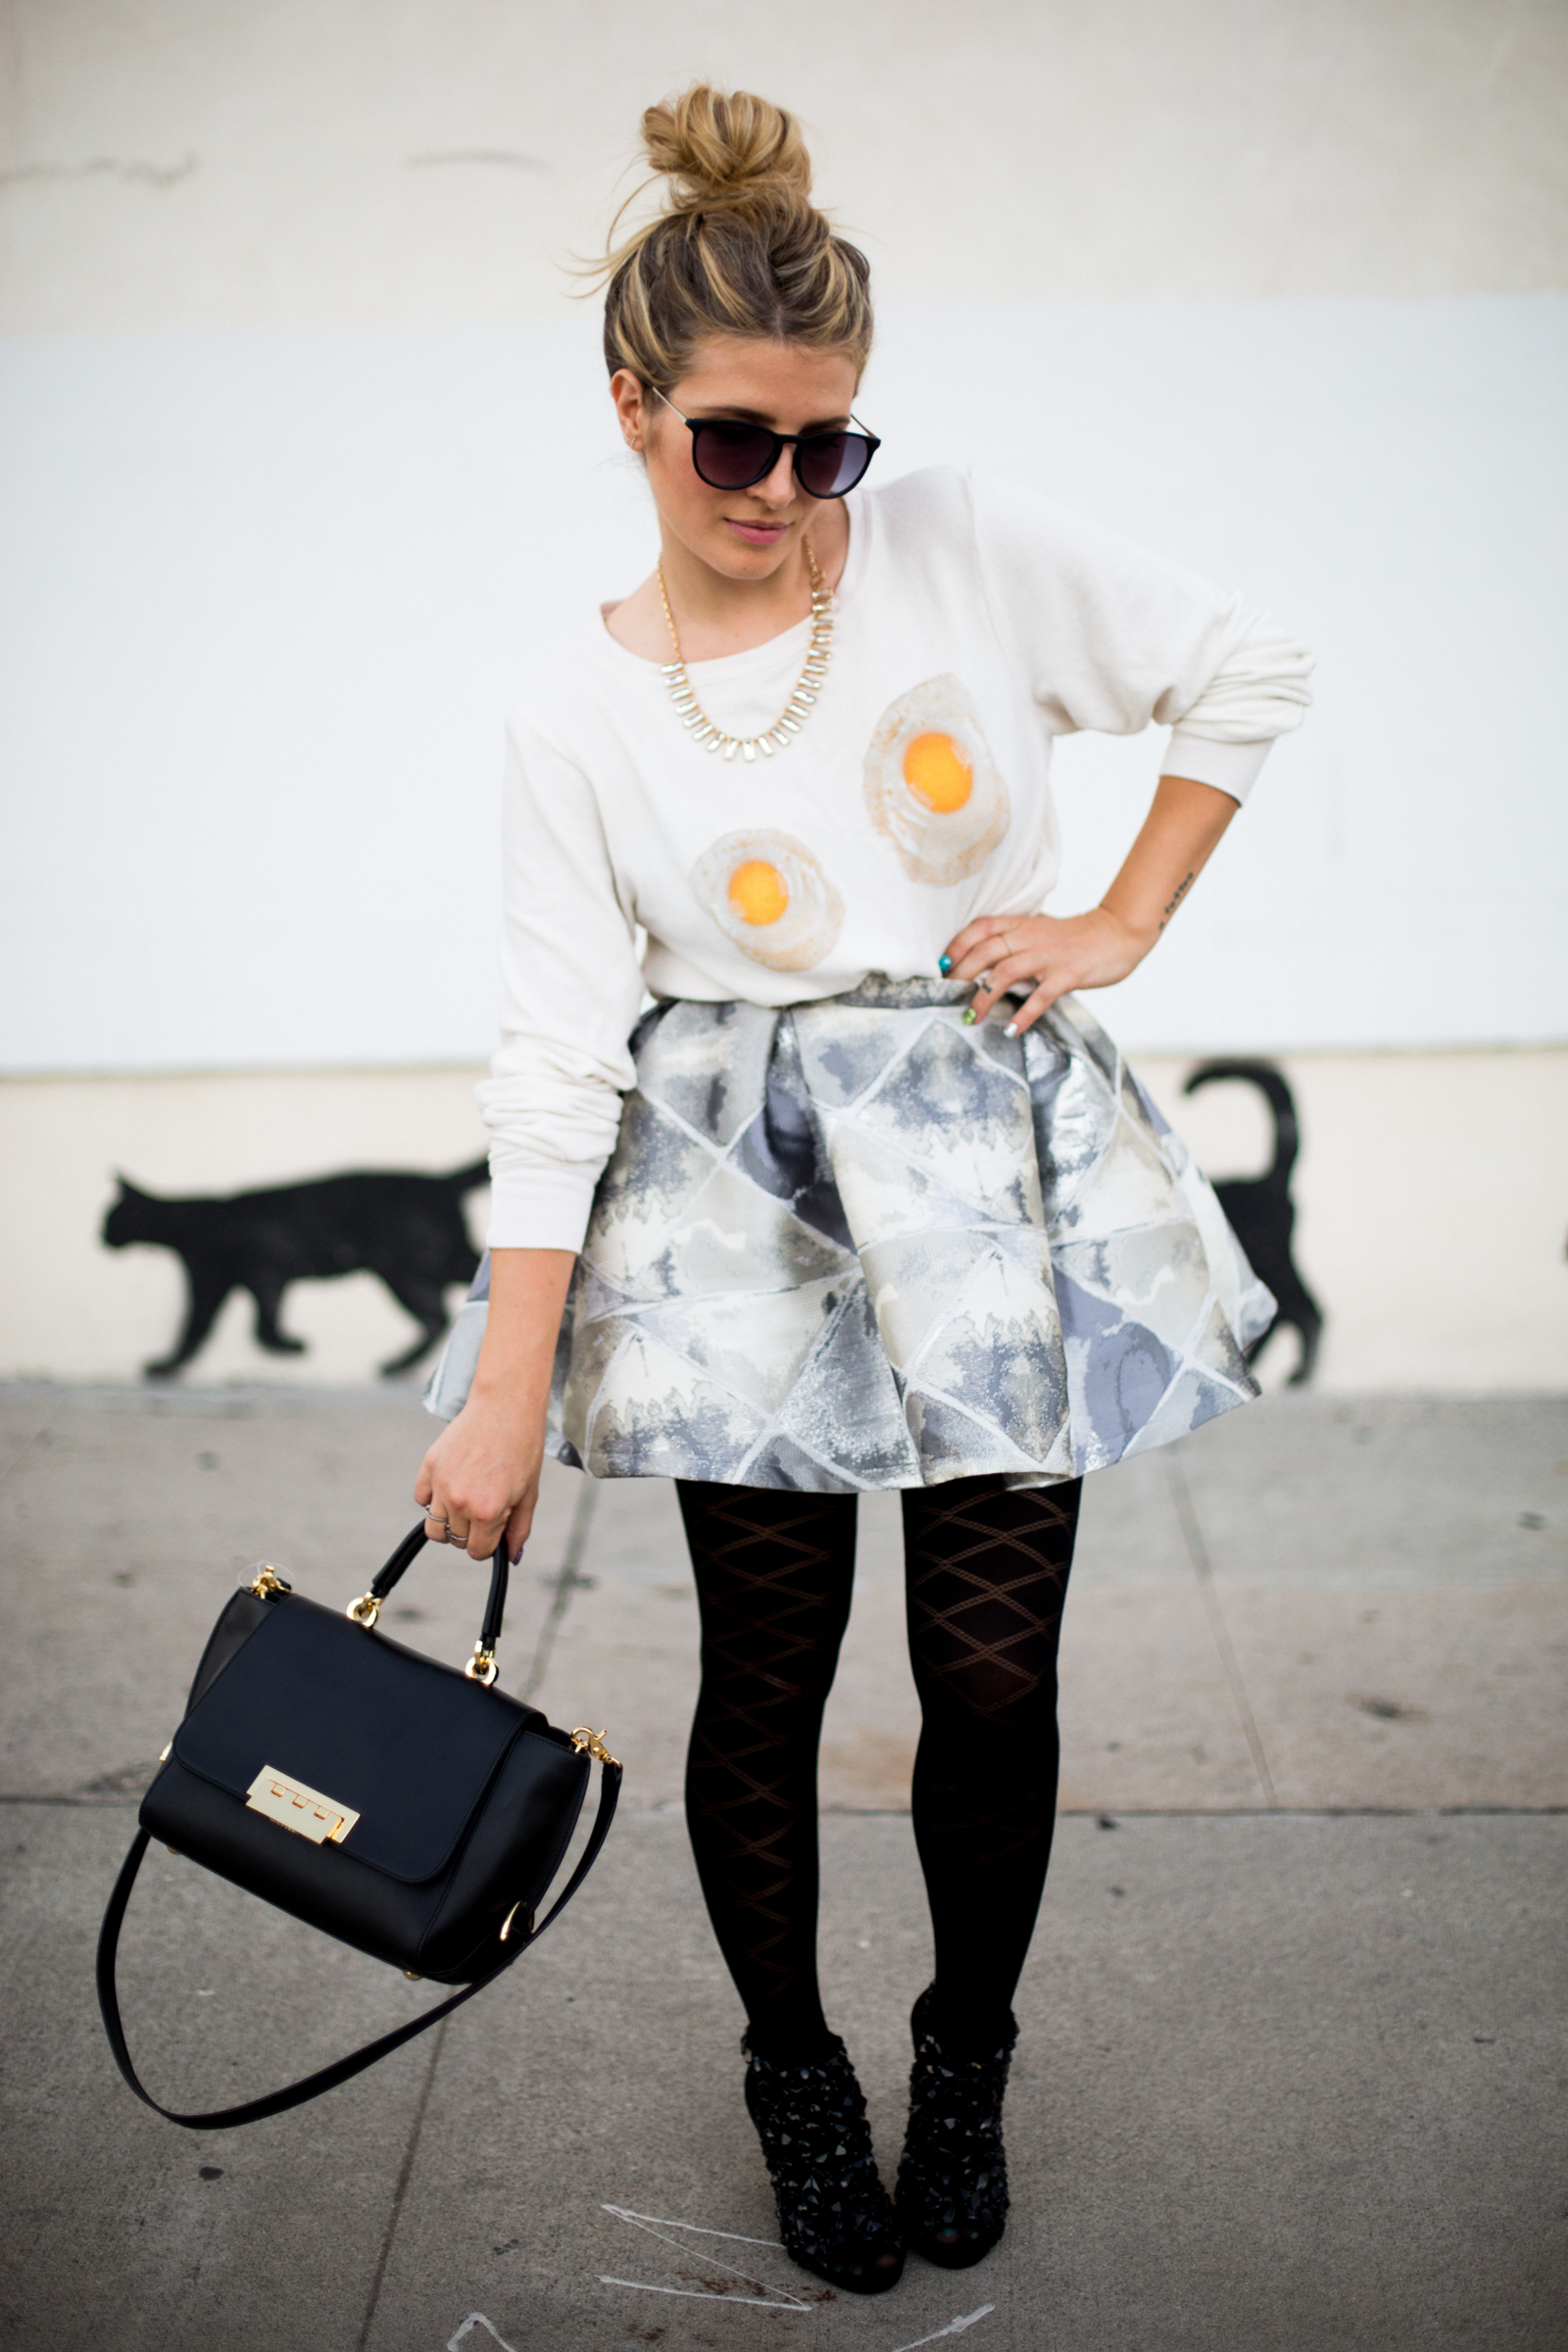 MrKate_FriedeggBradshaw_OOTD_Blog (10 of 33)